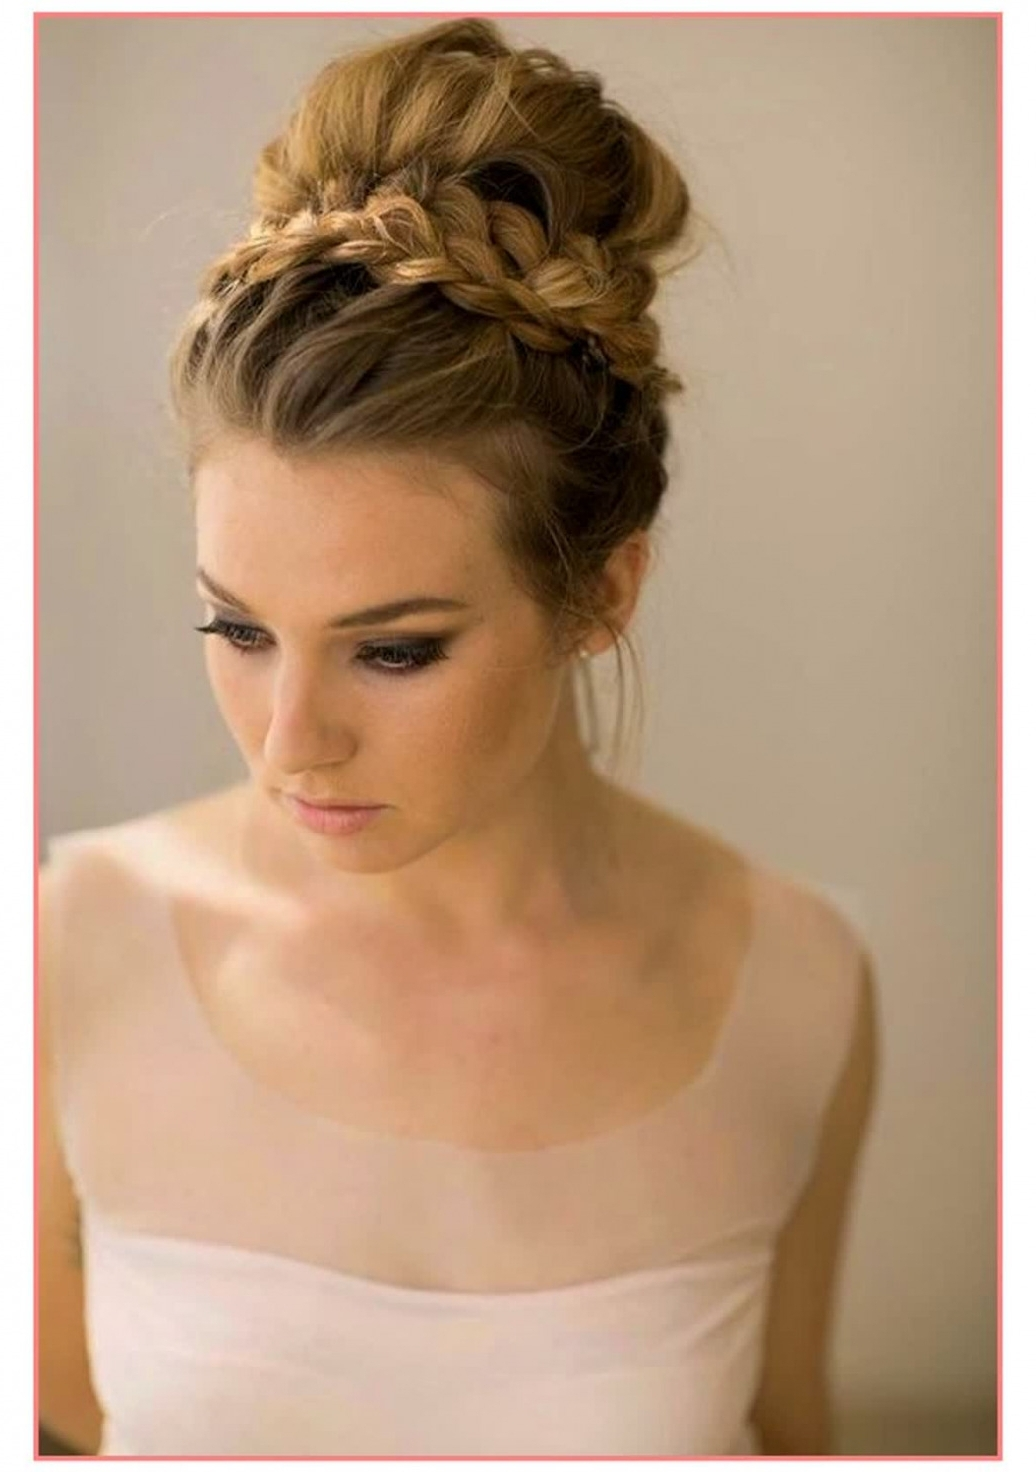 Wedding Hair : Top Hairstyles For A Wedding Guest With Short Hair Throughout 2017 Wedding Hairstyles For Guests (View 12 of 15)